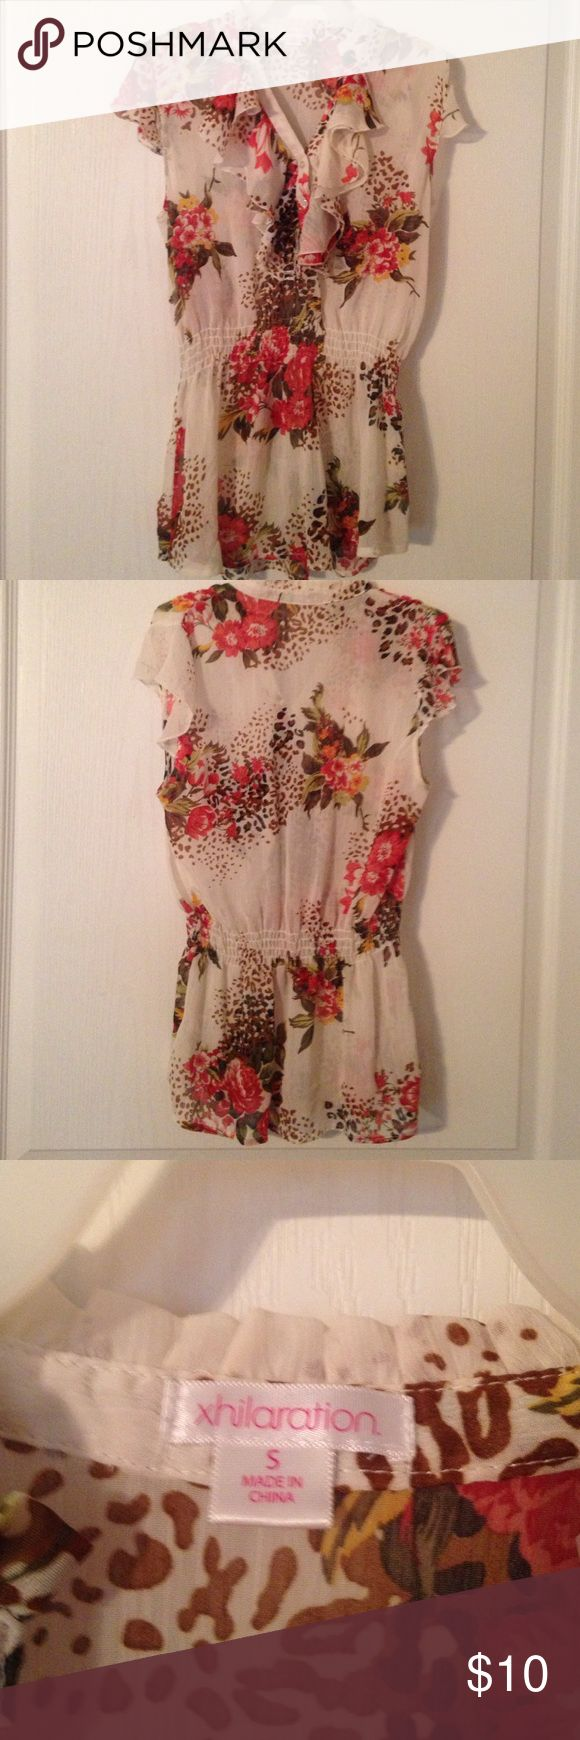 Floral Shirt Floral shirt size Small. Elastic cinched around waist. Very sheer with ruffles and cap sleeves. There are two buttons. Xhilaration Tops Blouses